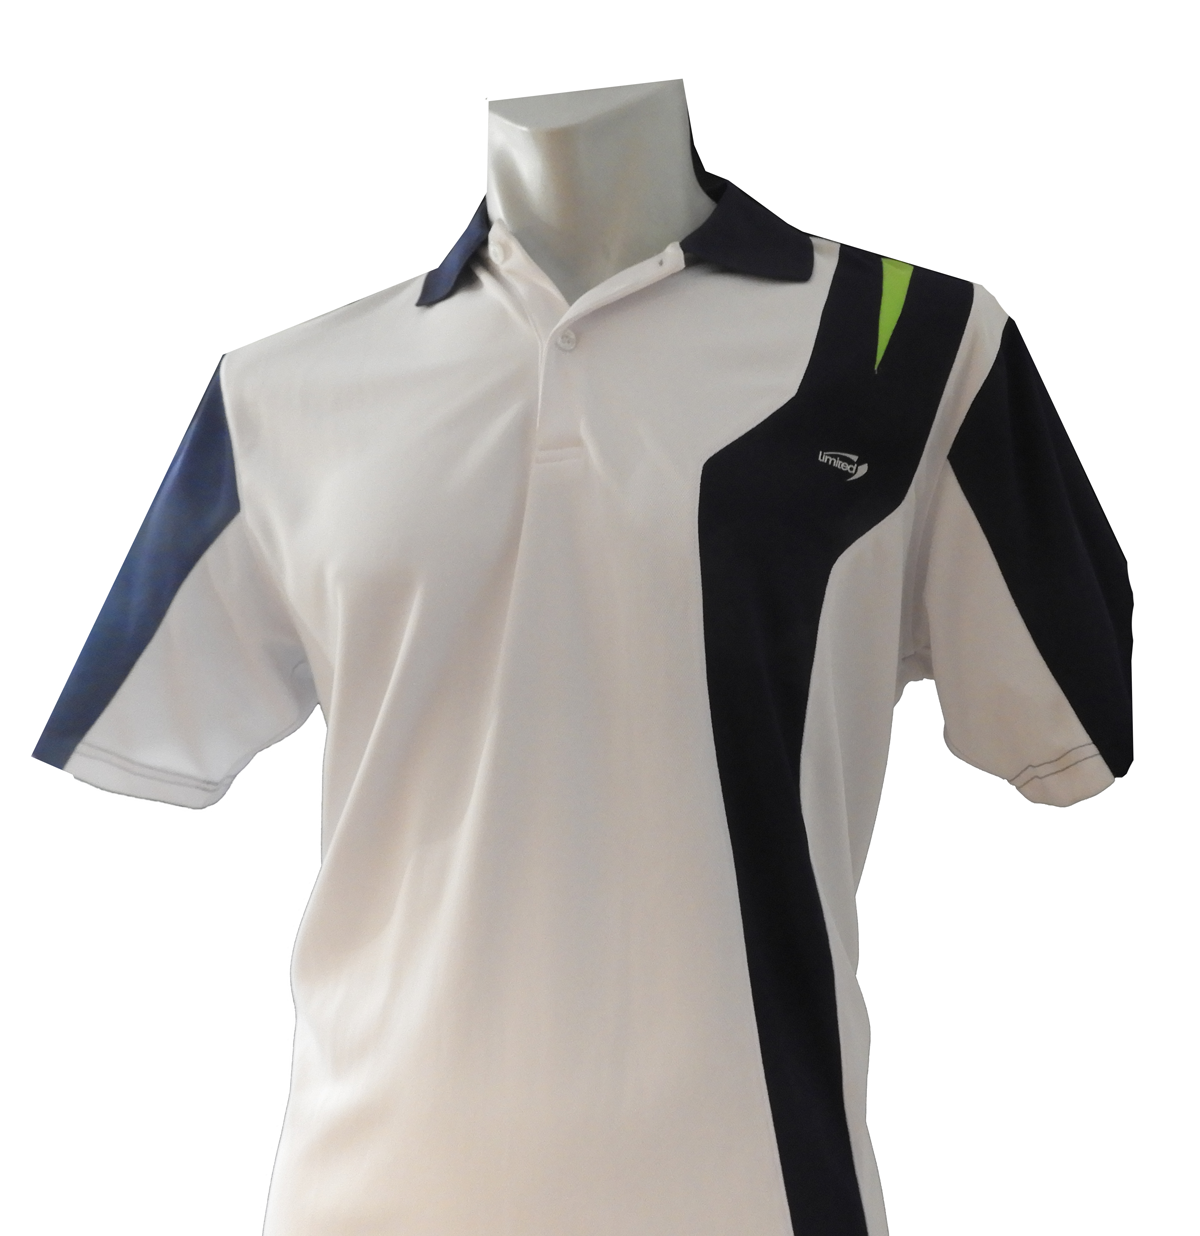 Limited Sports Taille tennishemd-Enfants-tennispolo-tennishemd - Taille Sports 176-dtb6146 56bc78